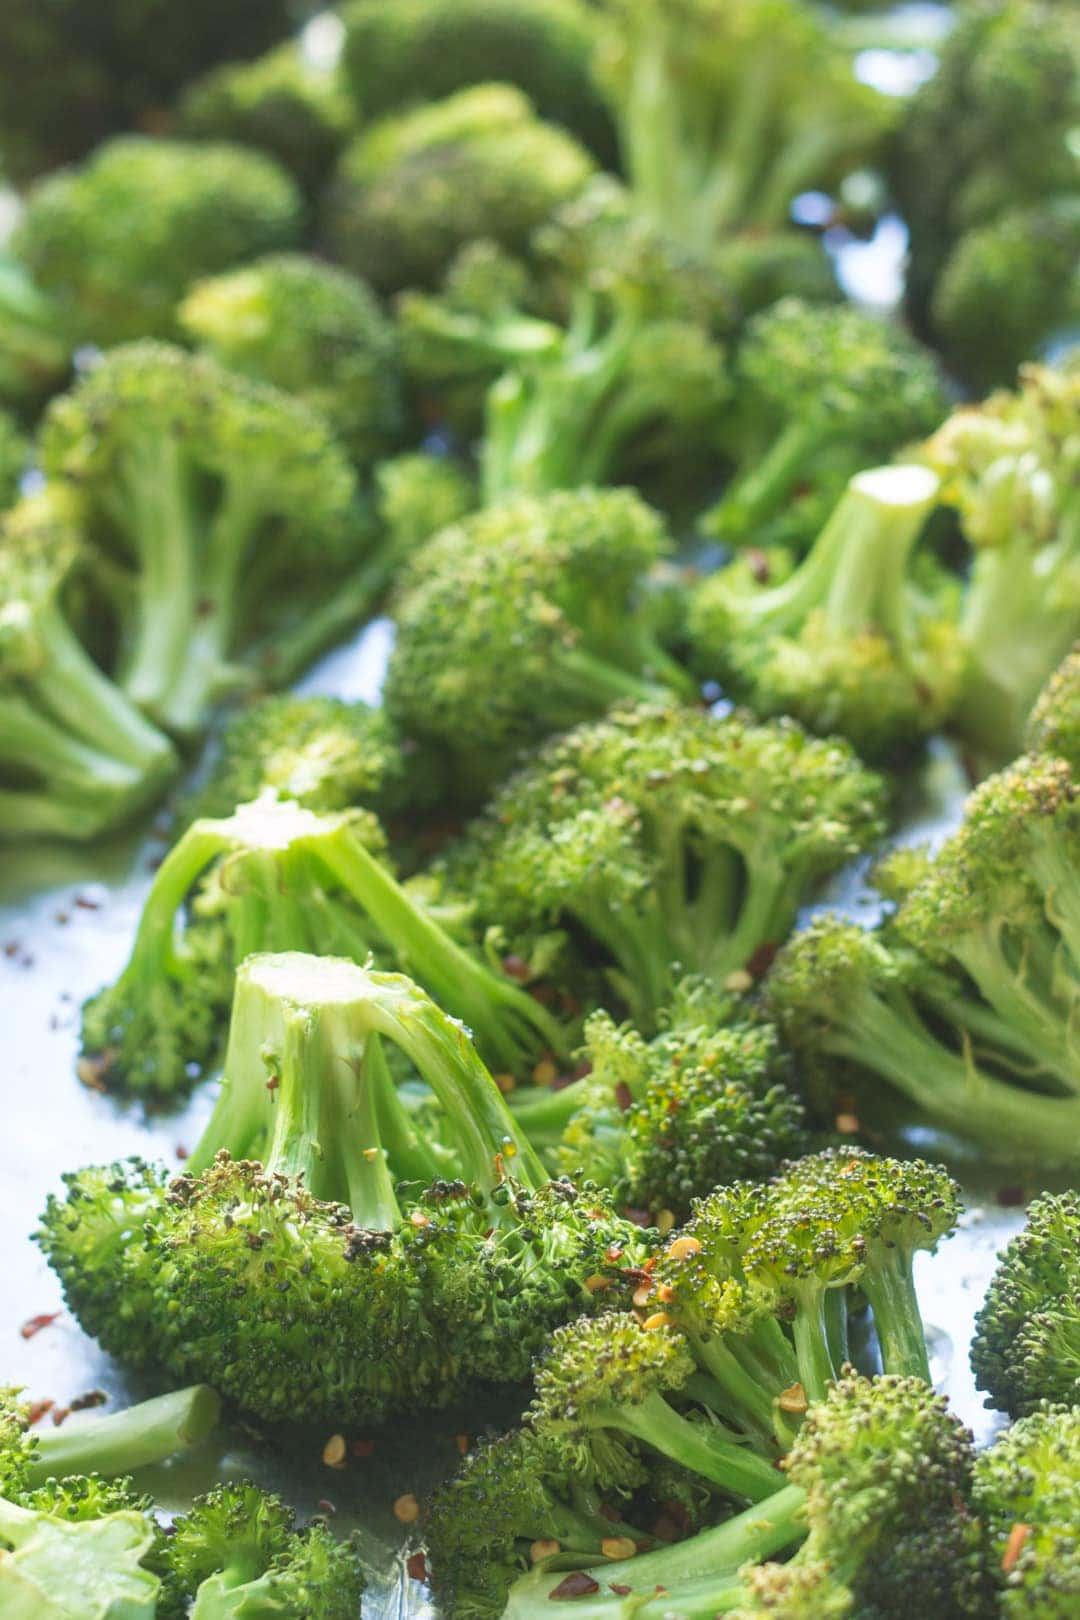 Roasted broccoli sprinkled with red pepper flakes on a sheet pan lined with aluminum foil.